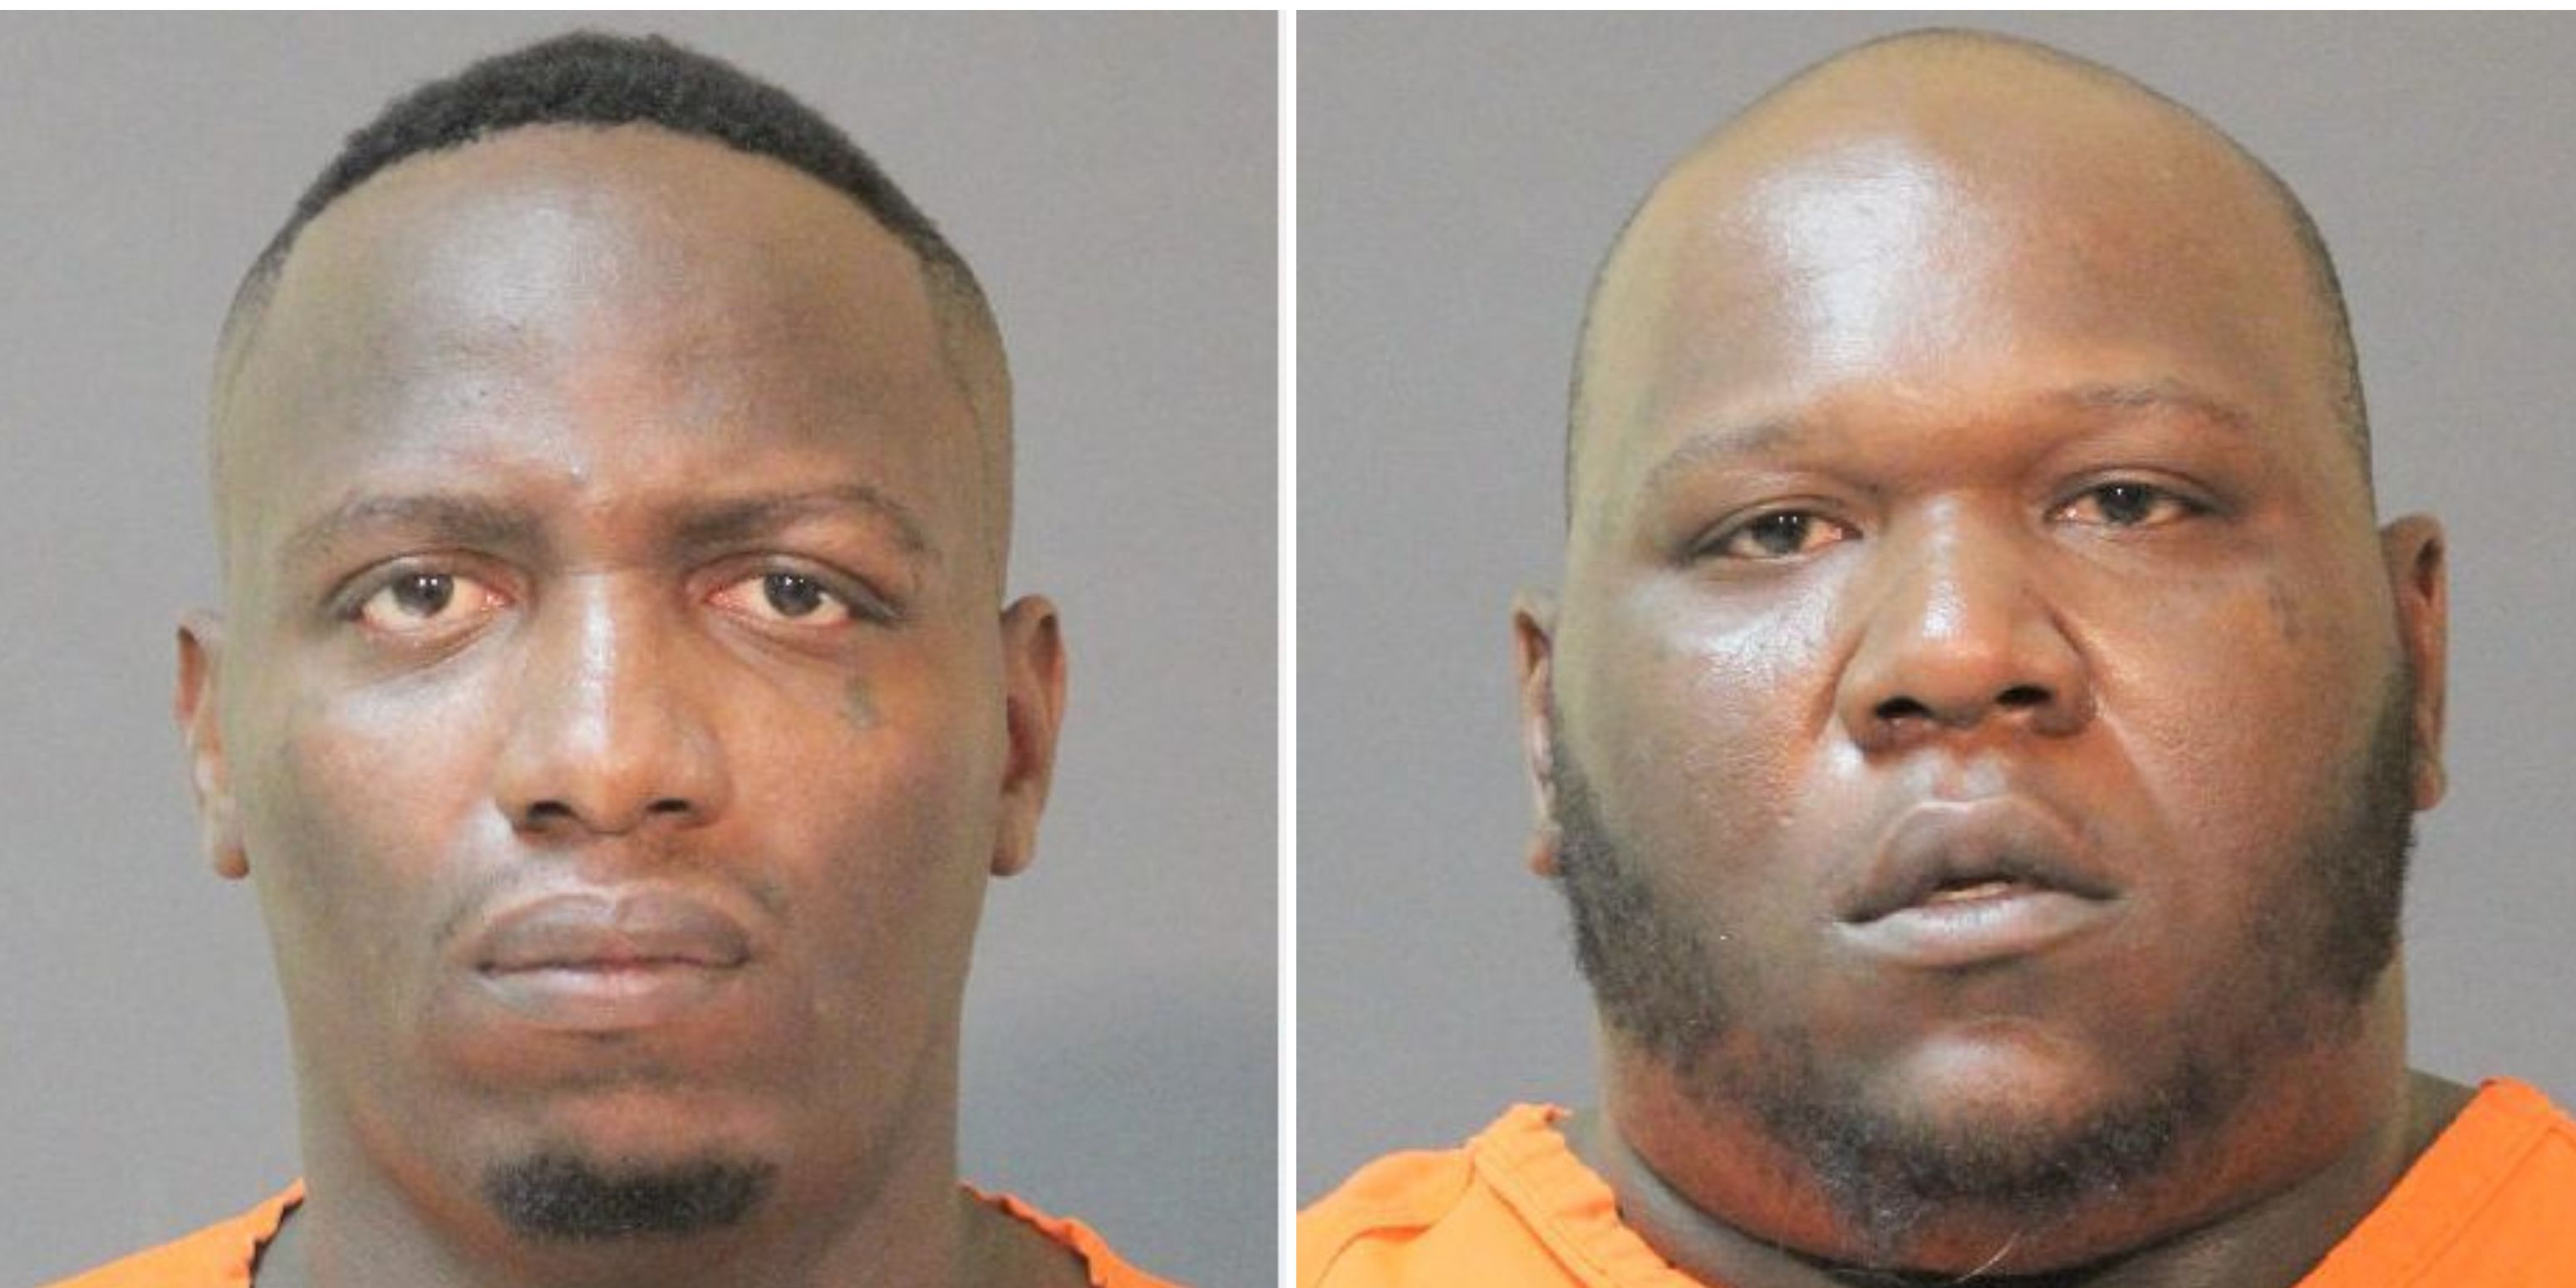 Two arrested for attempted murder after shooting at nightclub